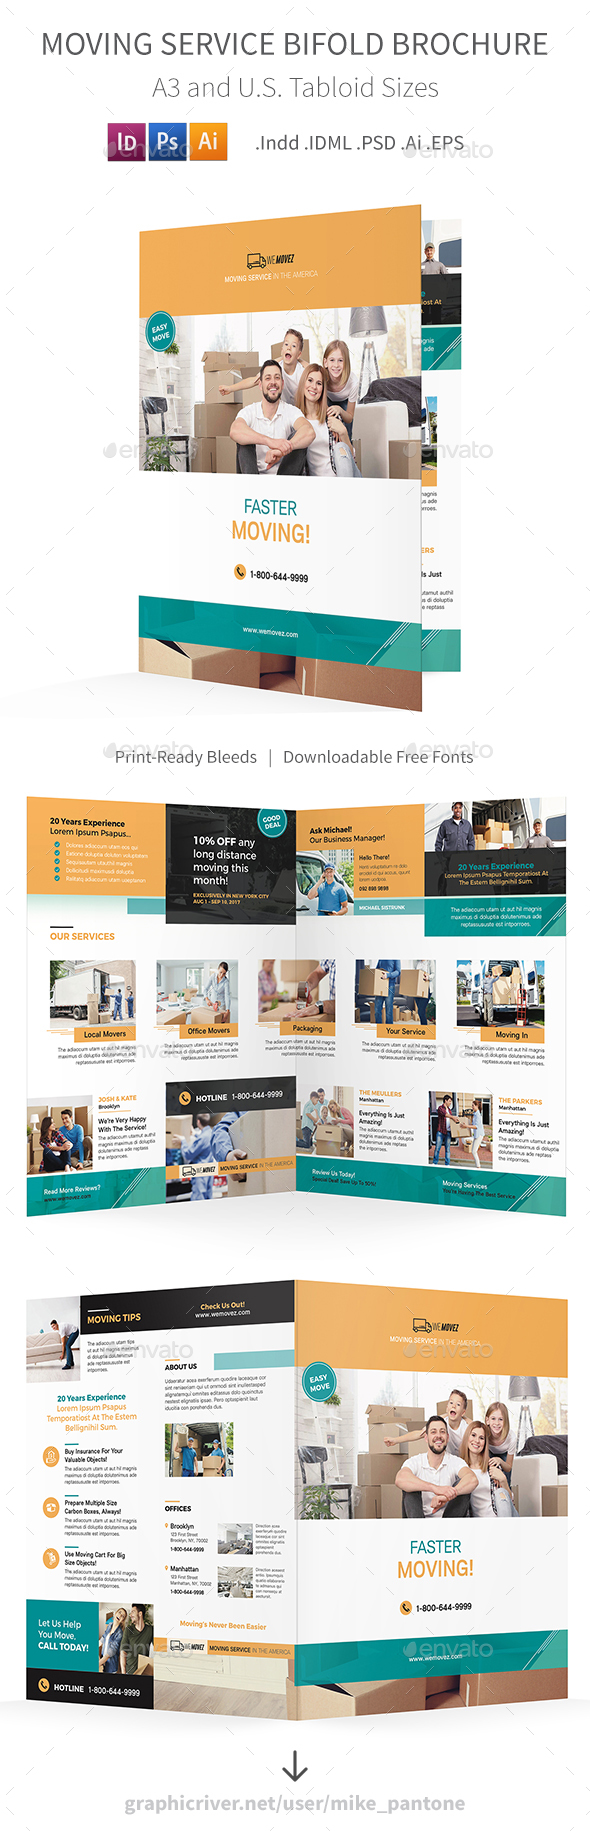 GraphicRiver Moving Service Bifold Halffold Brochure 2 20776289